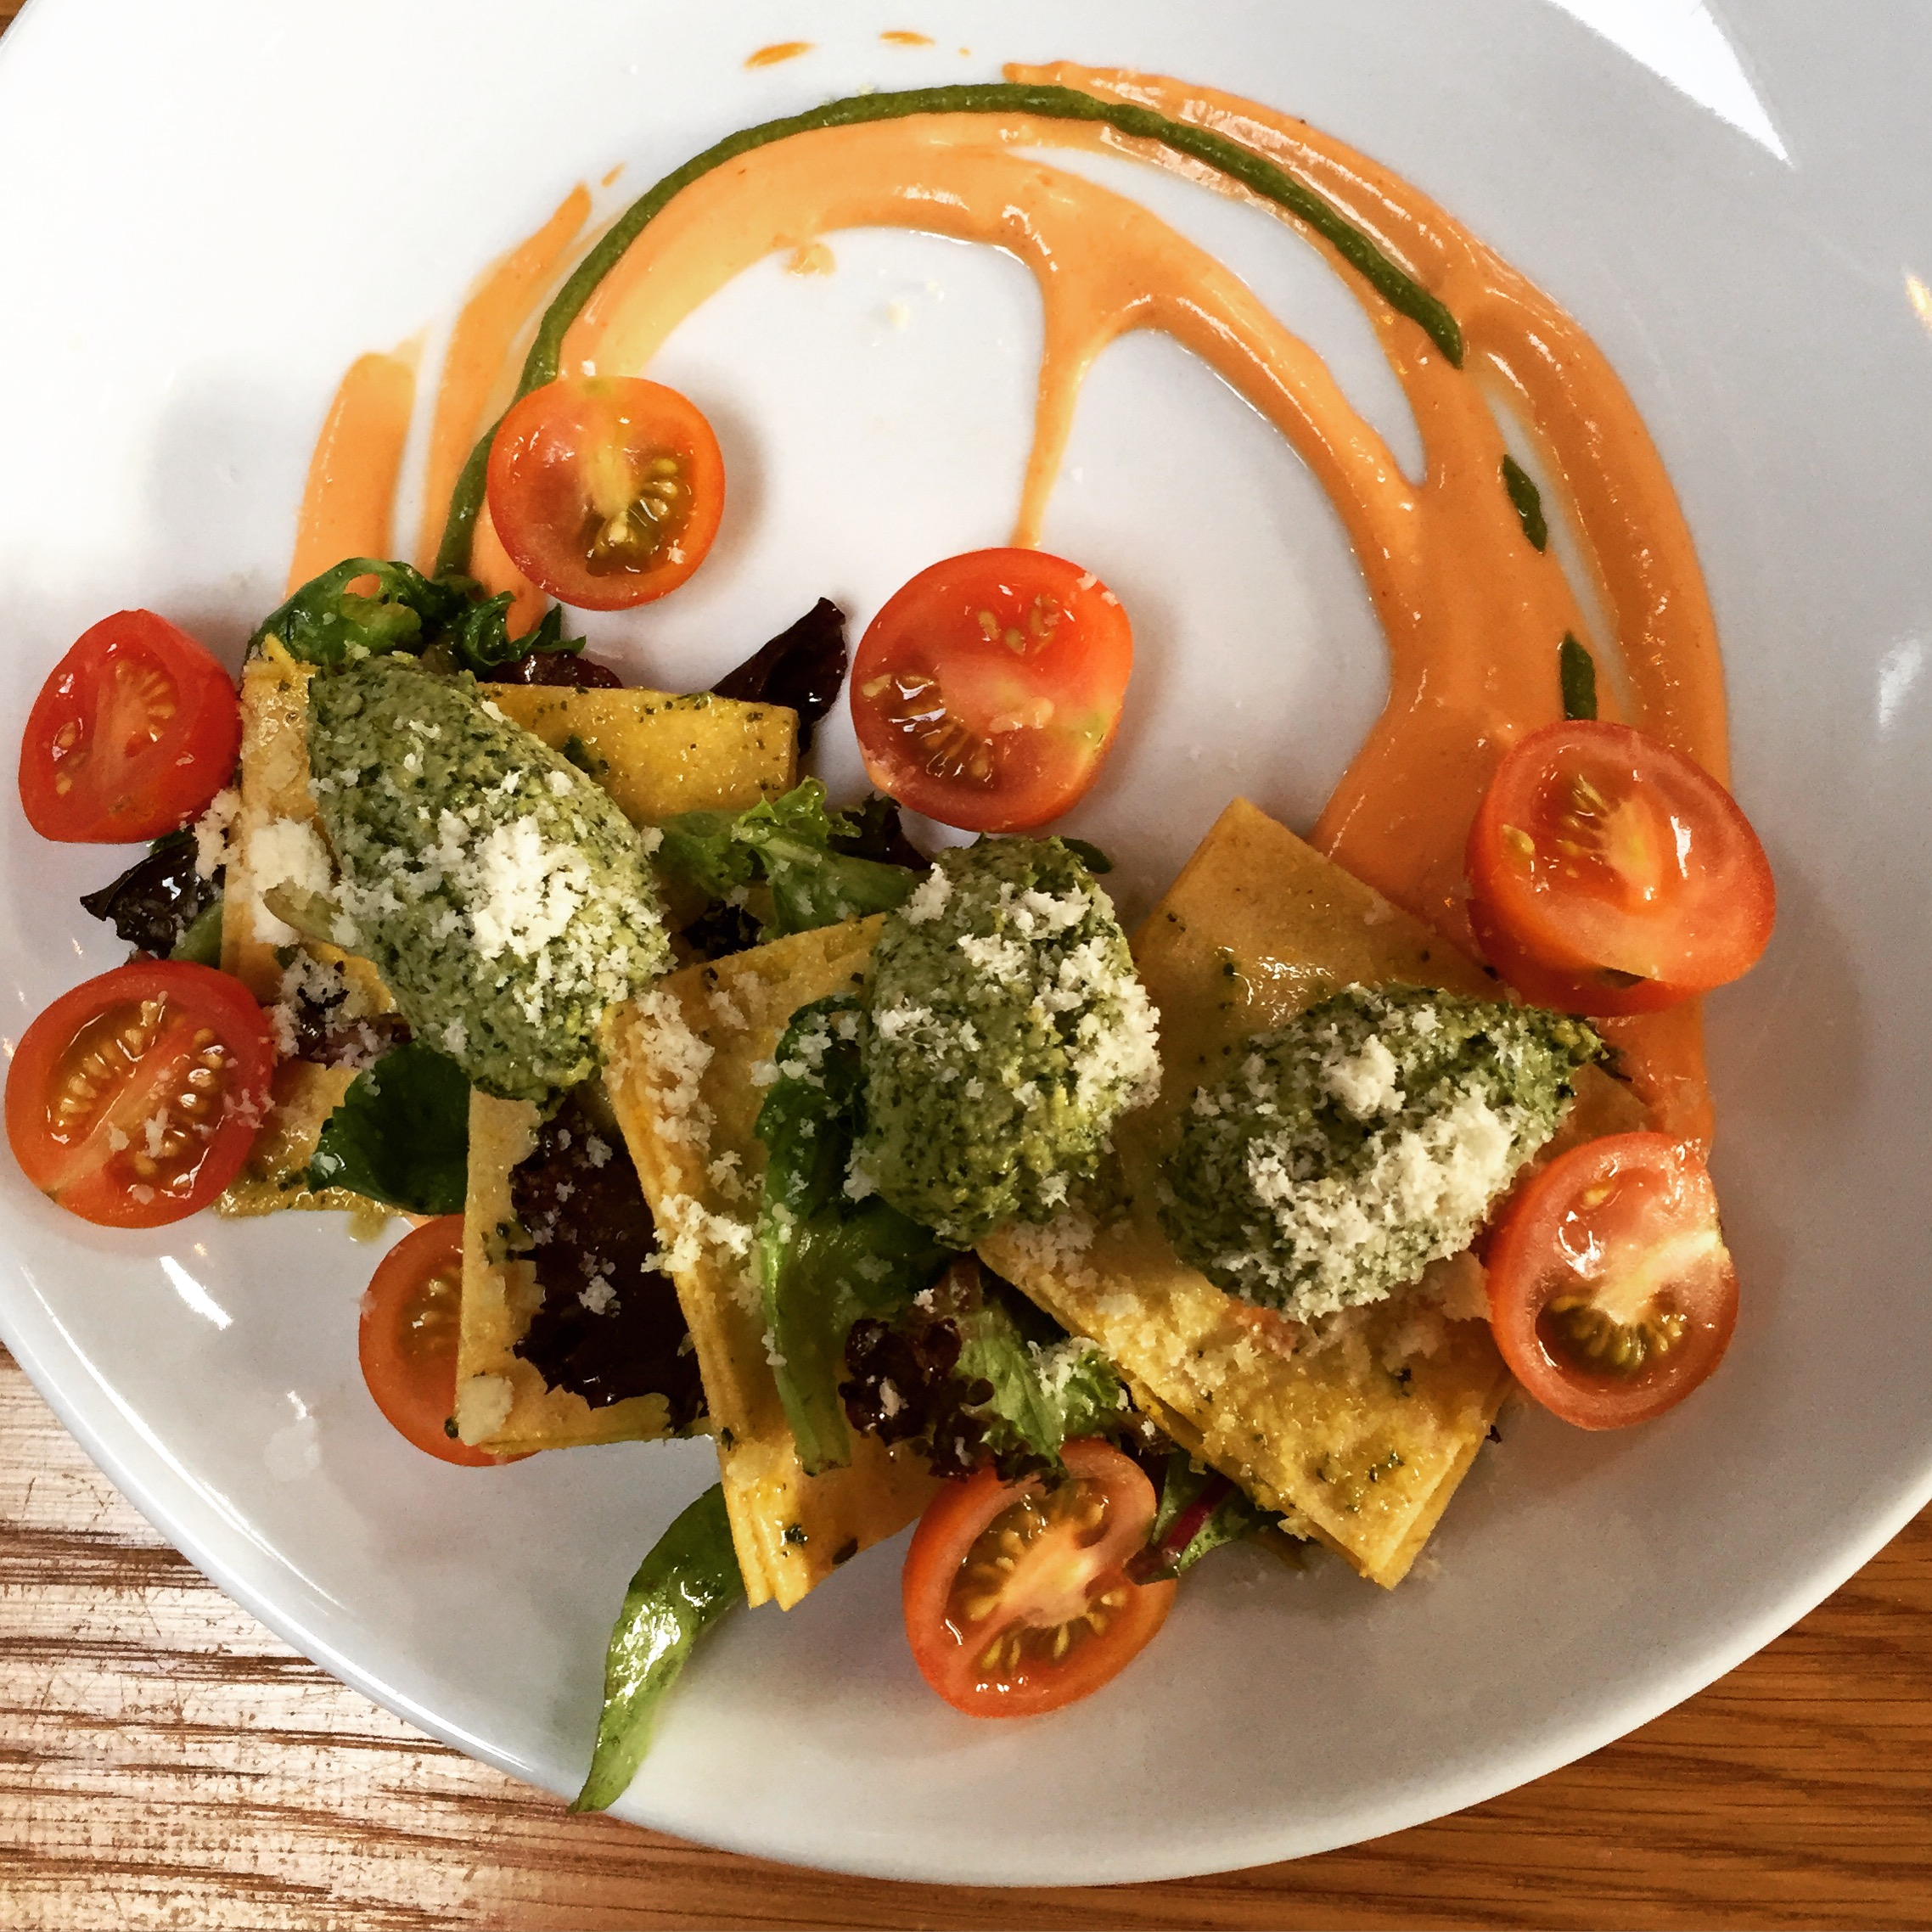 Raw Ravioli from The Springs restaurant in Los Angeles, CA (now Closed)